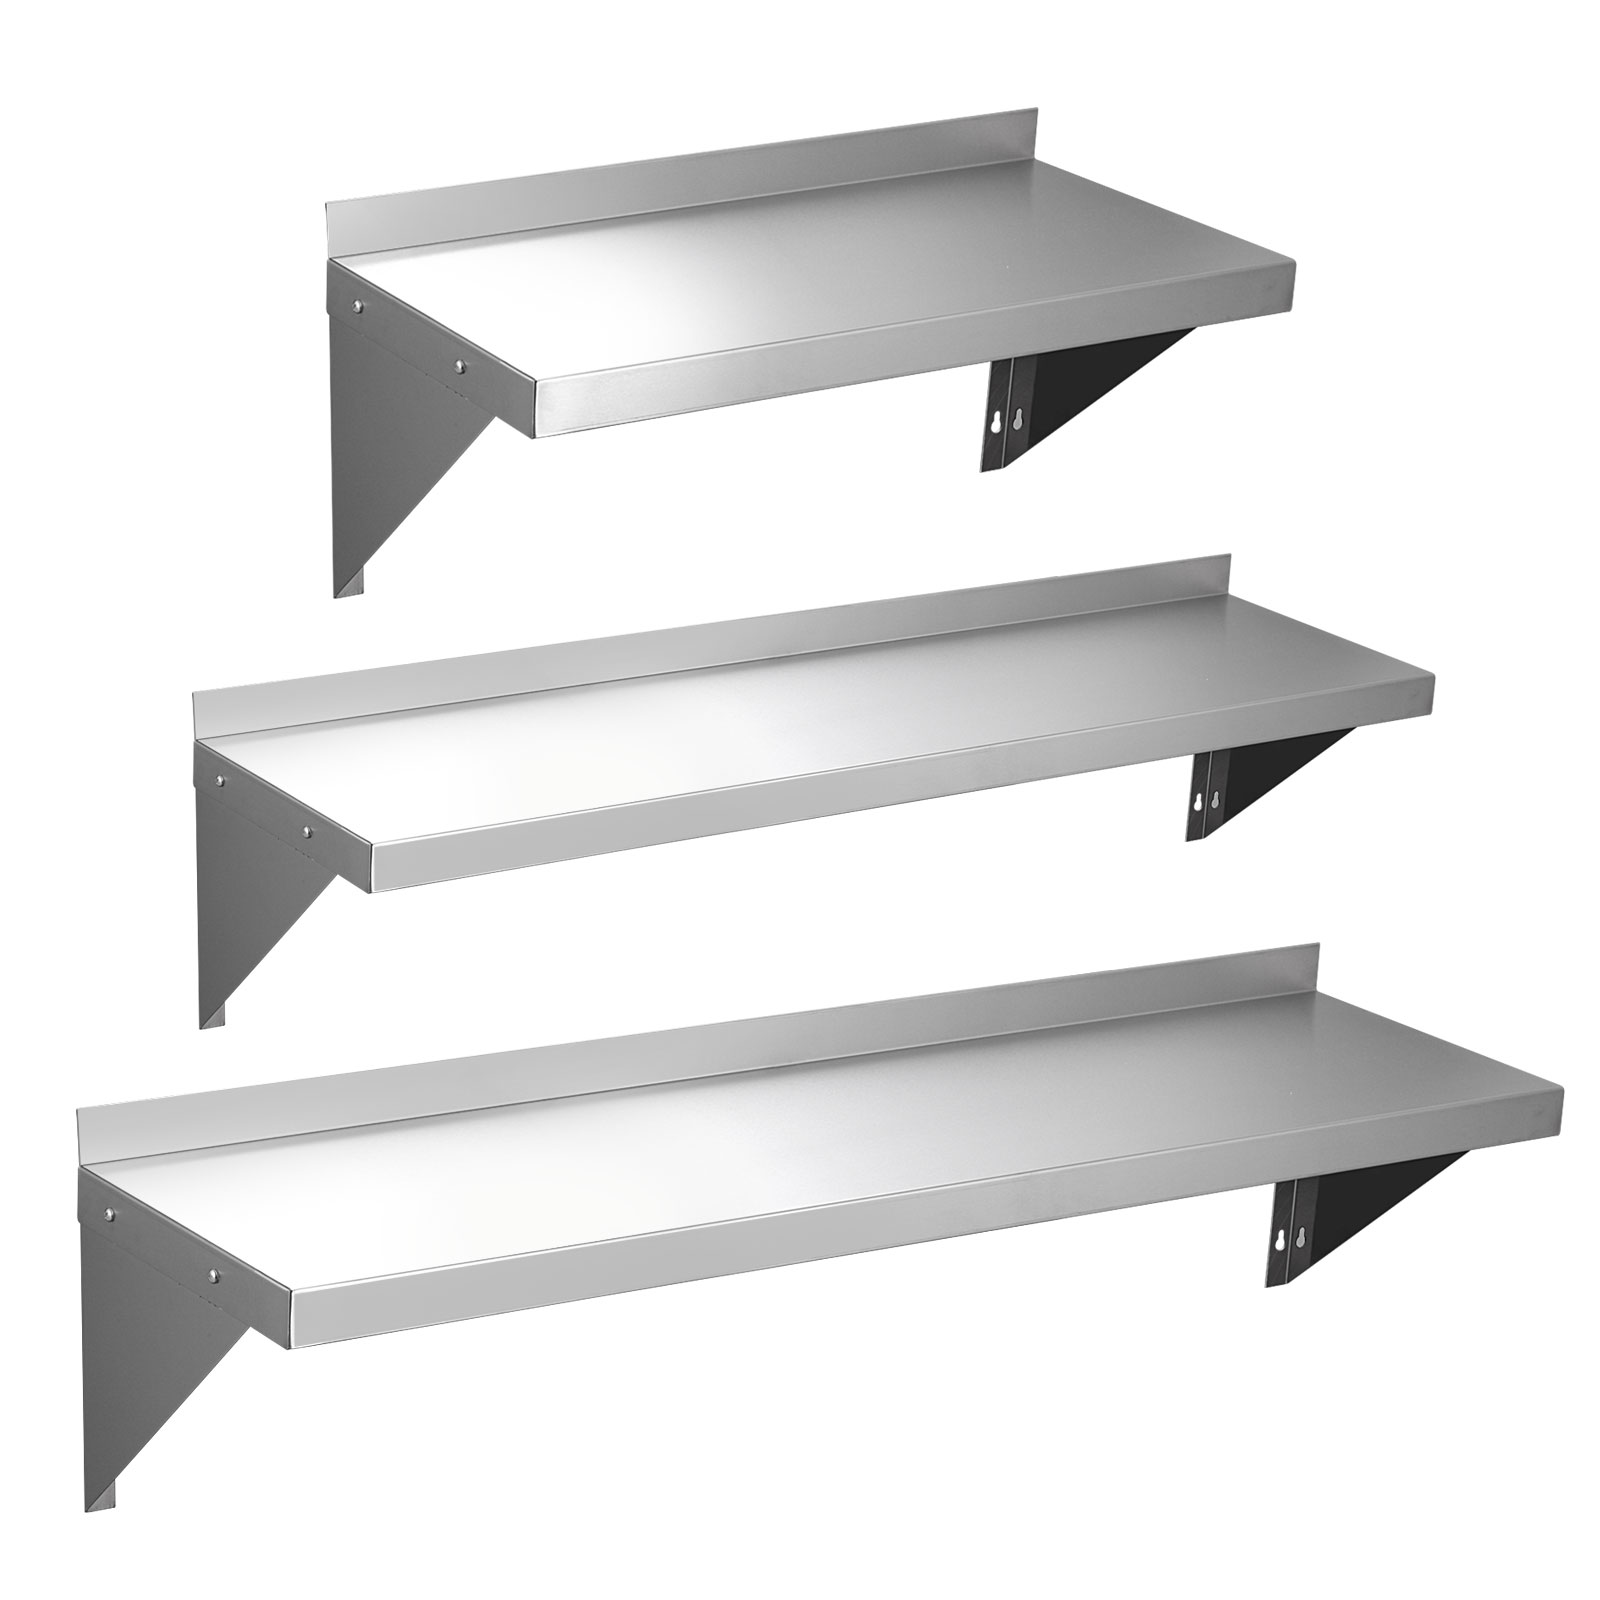 Kitchen Shelves Wall Mounted: 600 900 1200mm Stainless Steel Wall Shelf With Brackets